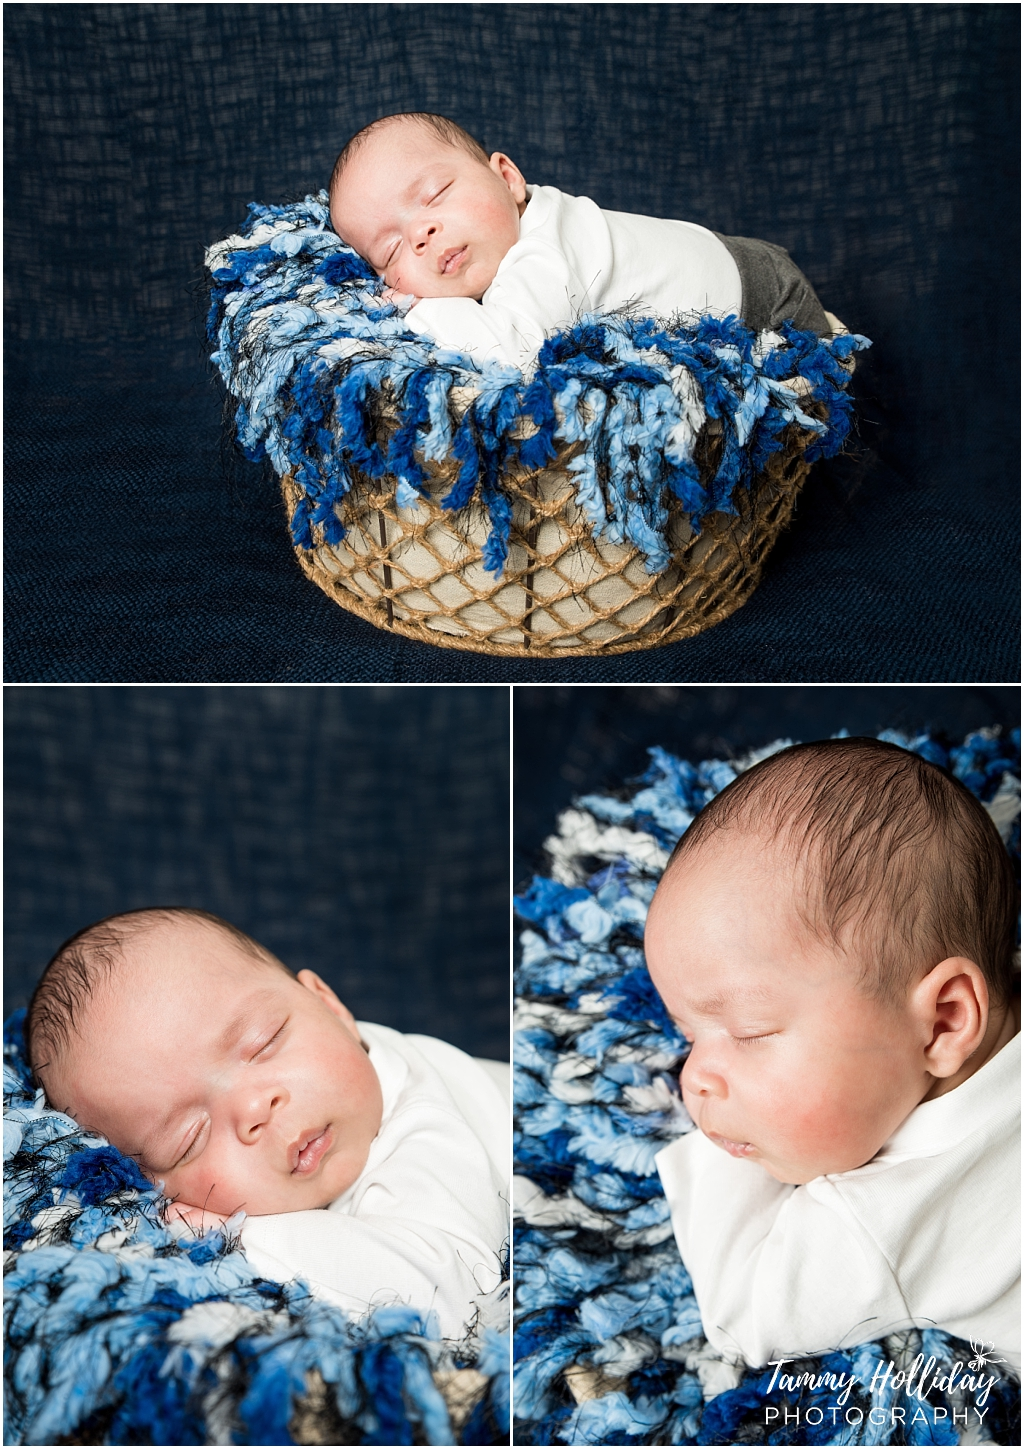 sleeping baby in woven basket with blue ruffled blanket